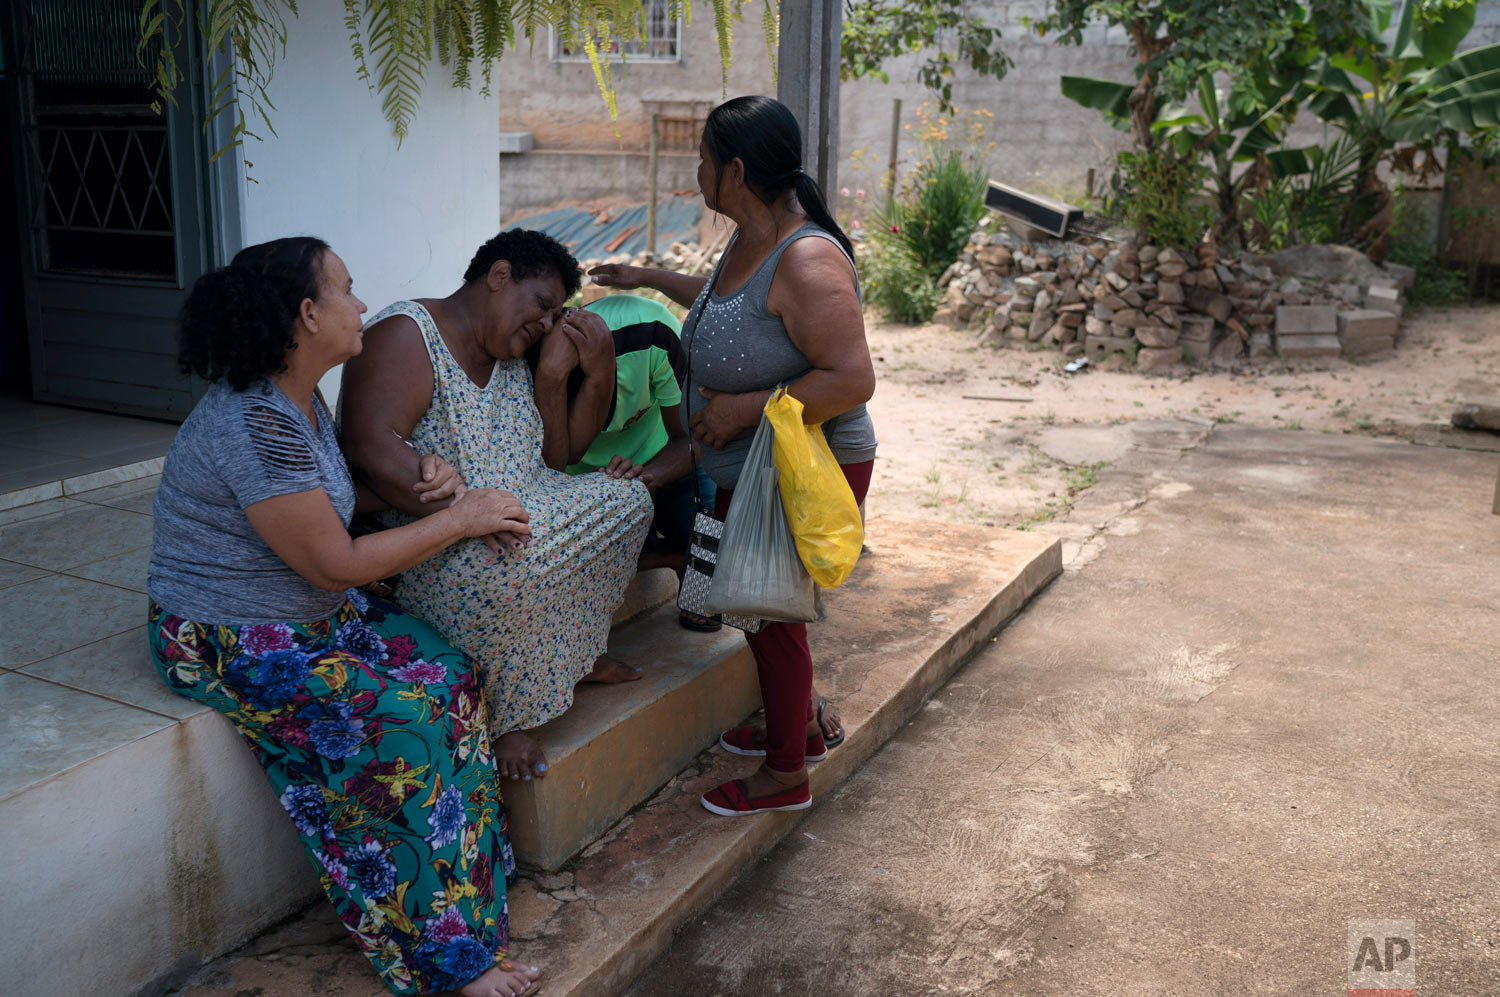 Malvina Firmina Nunes and her son Fernando are comforted by friends at their home as they grieve for their missing 35-year-old son and brother, Peterson, after a deadly Vale dam collapse in Brumadinho, Brazil, Jan. 30, 2019. (AP Photo/Leo Correa)